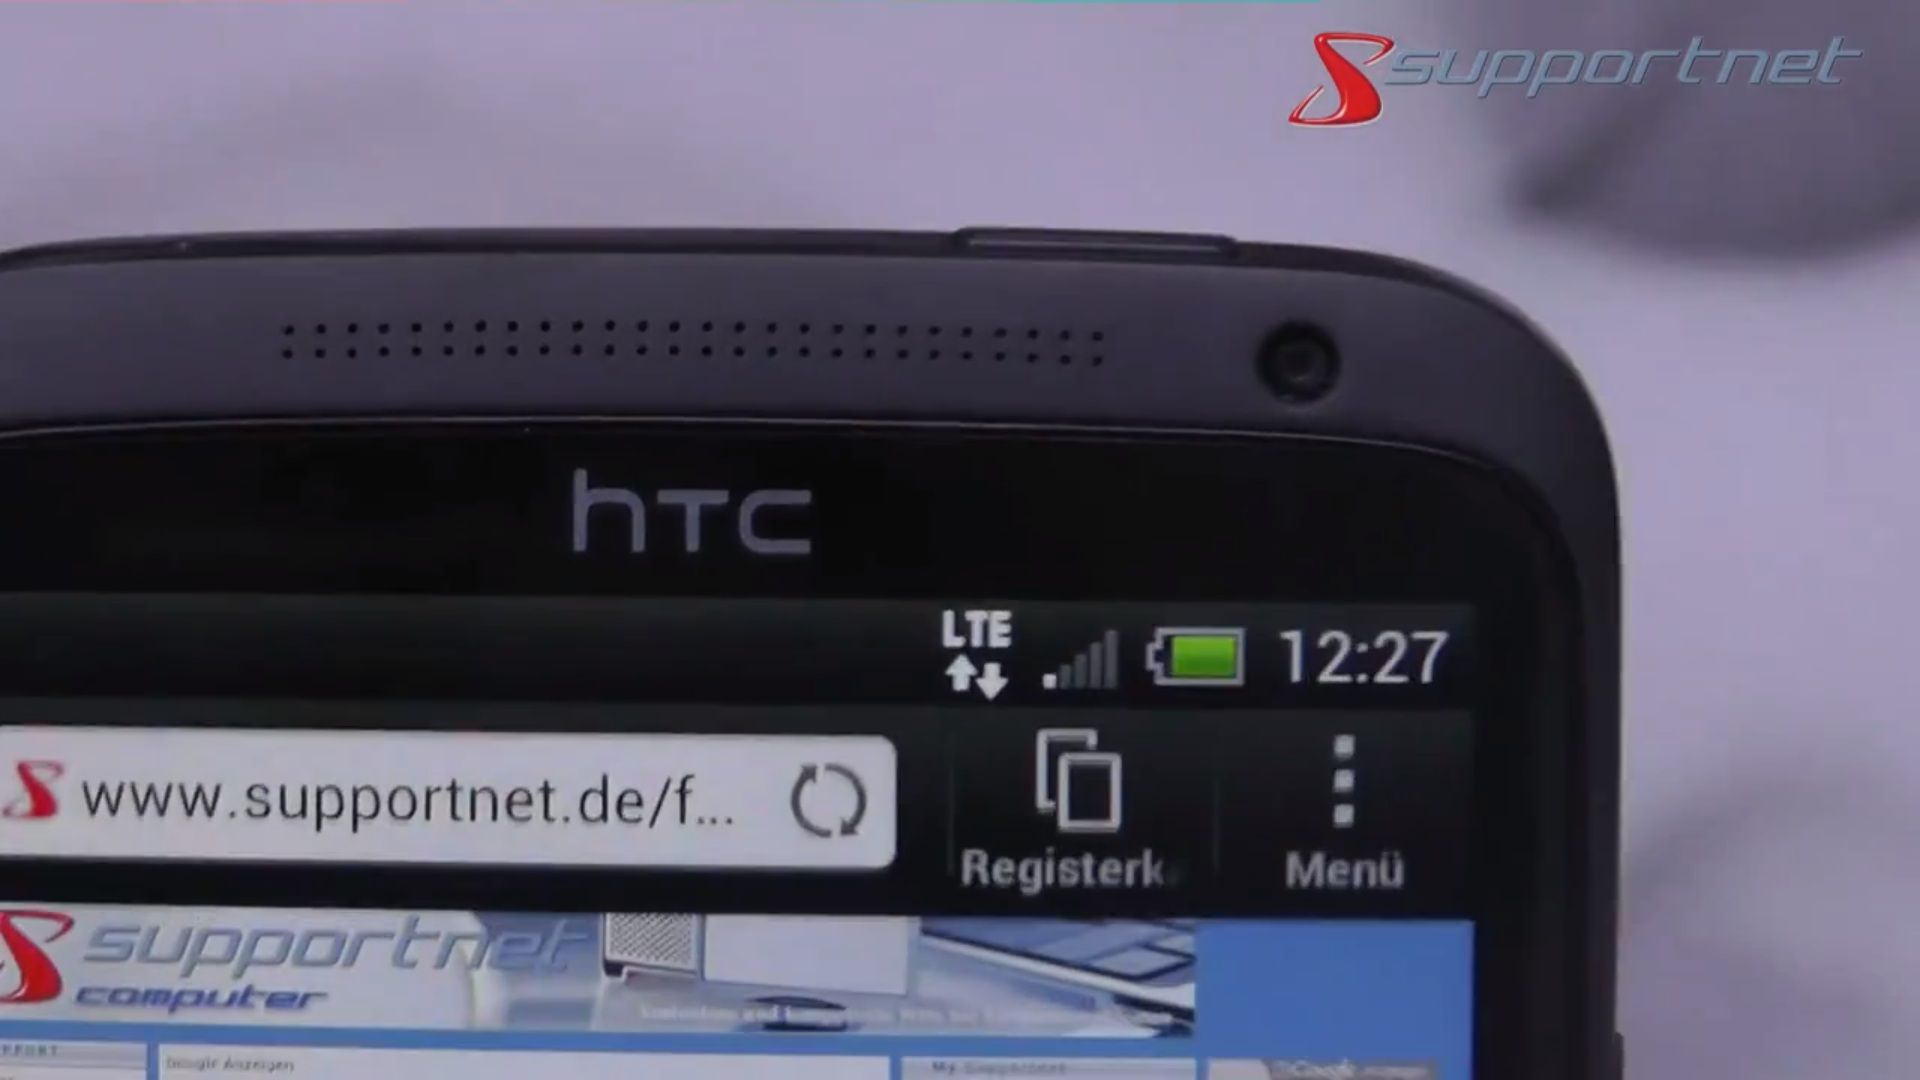 htc-one-xl-gross-470.jpg?nocache=1357726246386